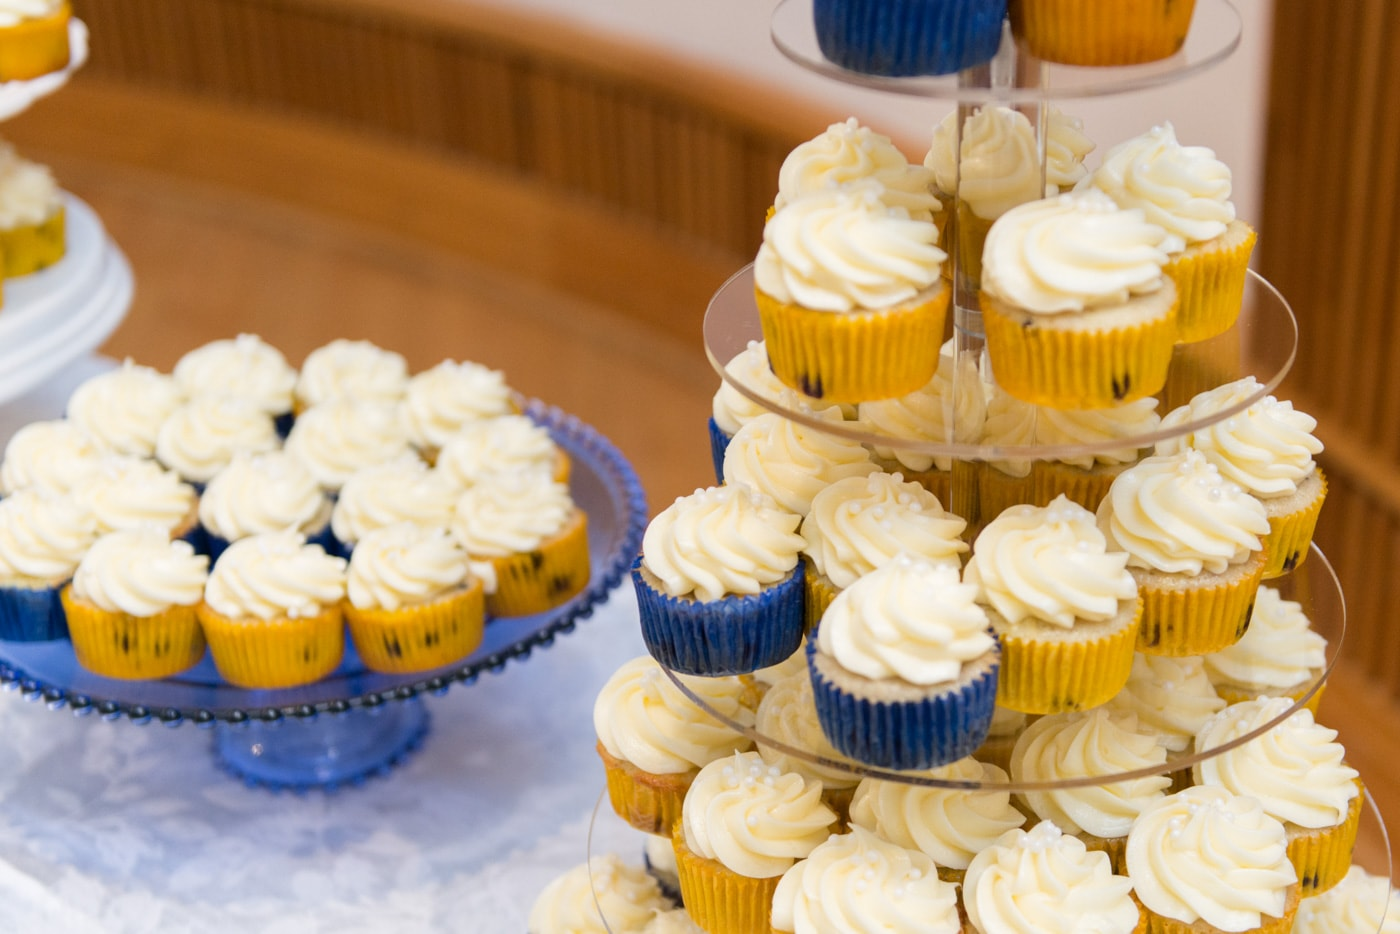 Blueberry cupcakes with vanilla frosting at a wedding reception at St Mark Catholic Church in Vienna, Virginia